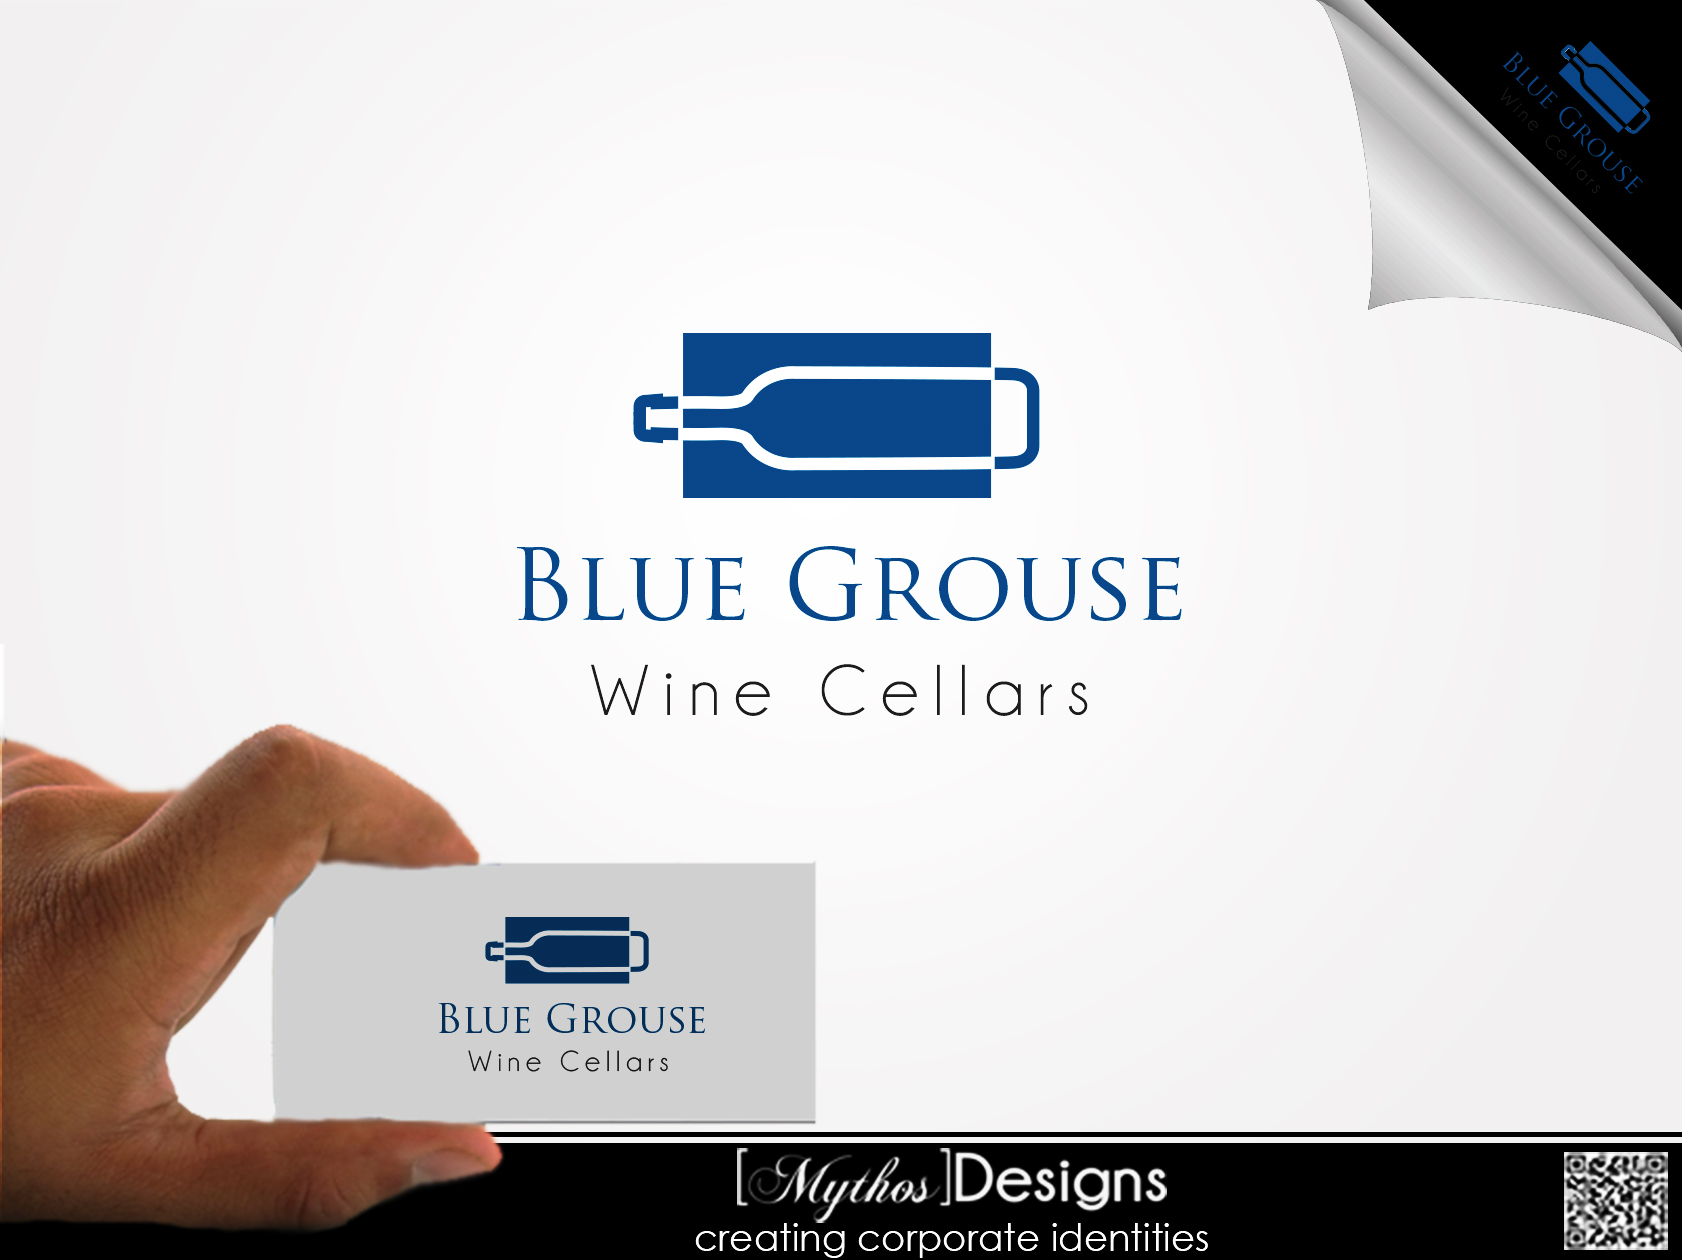 Logo Design by Mythos Designs - Entry No. 16 in the Logo Design Contest Creative Logo Design for Blue Grouse Wine Cellars.